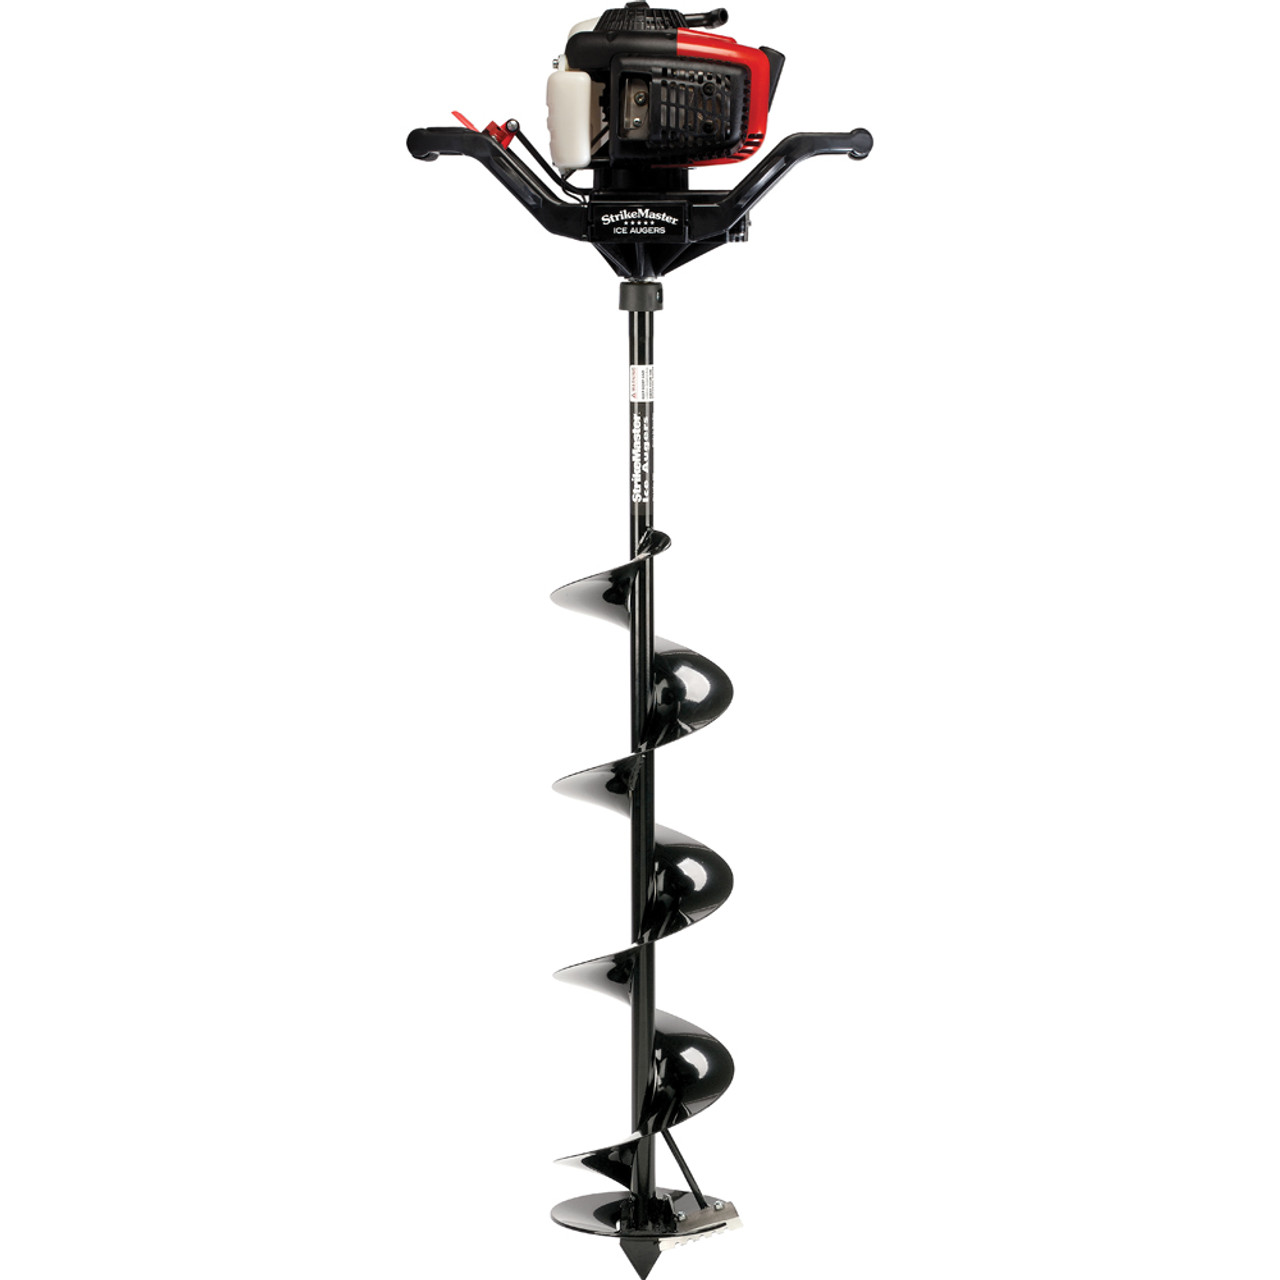 StrikeMaster Chipper Magnum Power Auger - 8 25